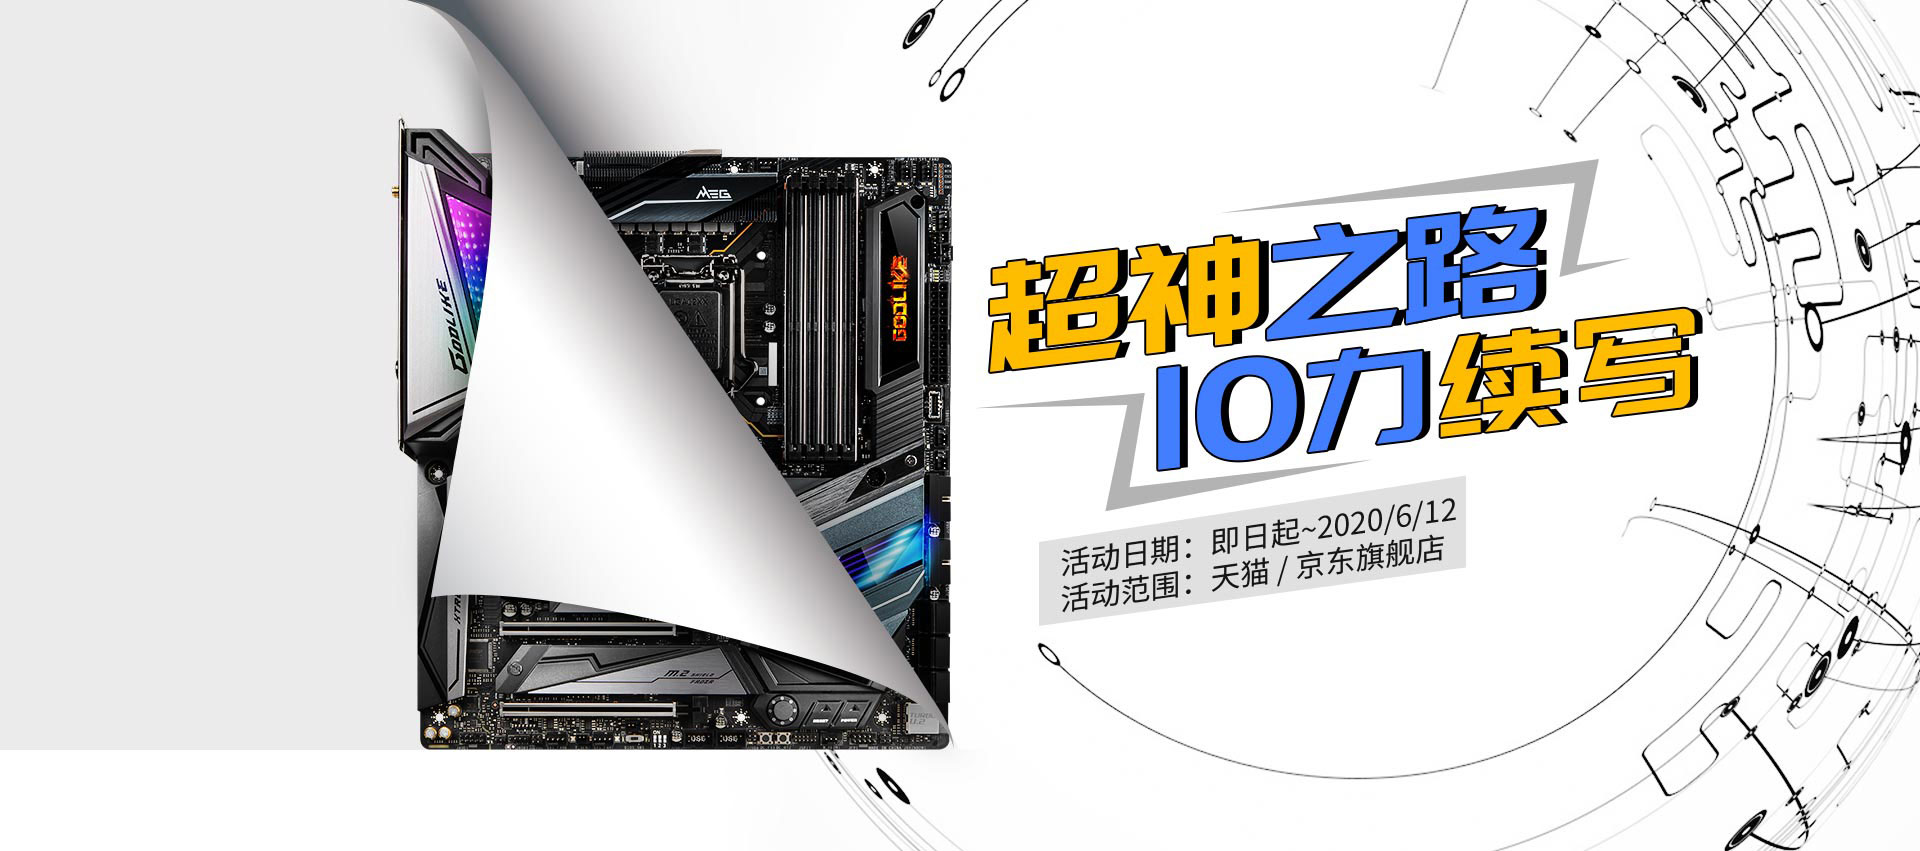 msi renew your product event kv